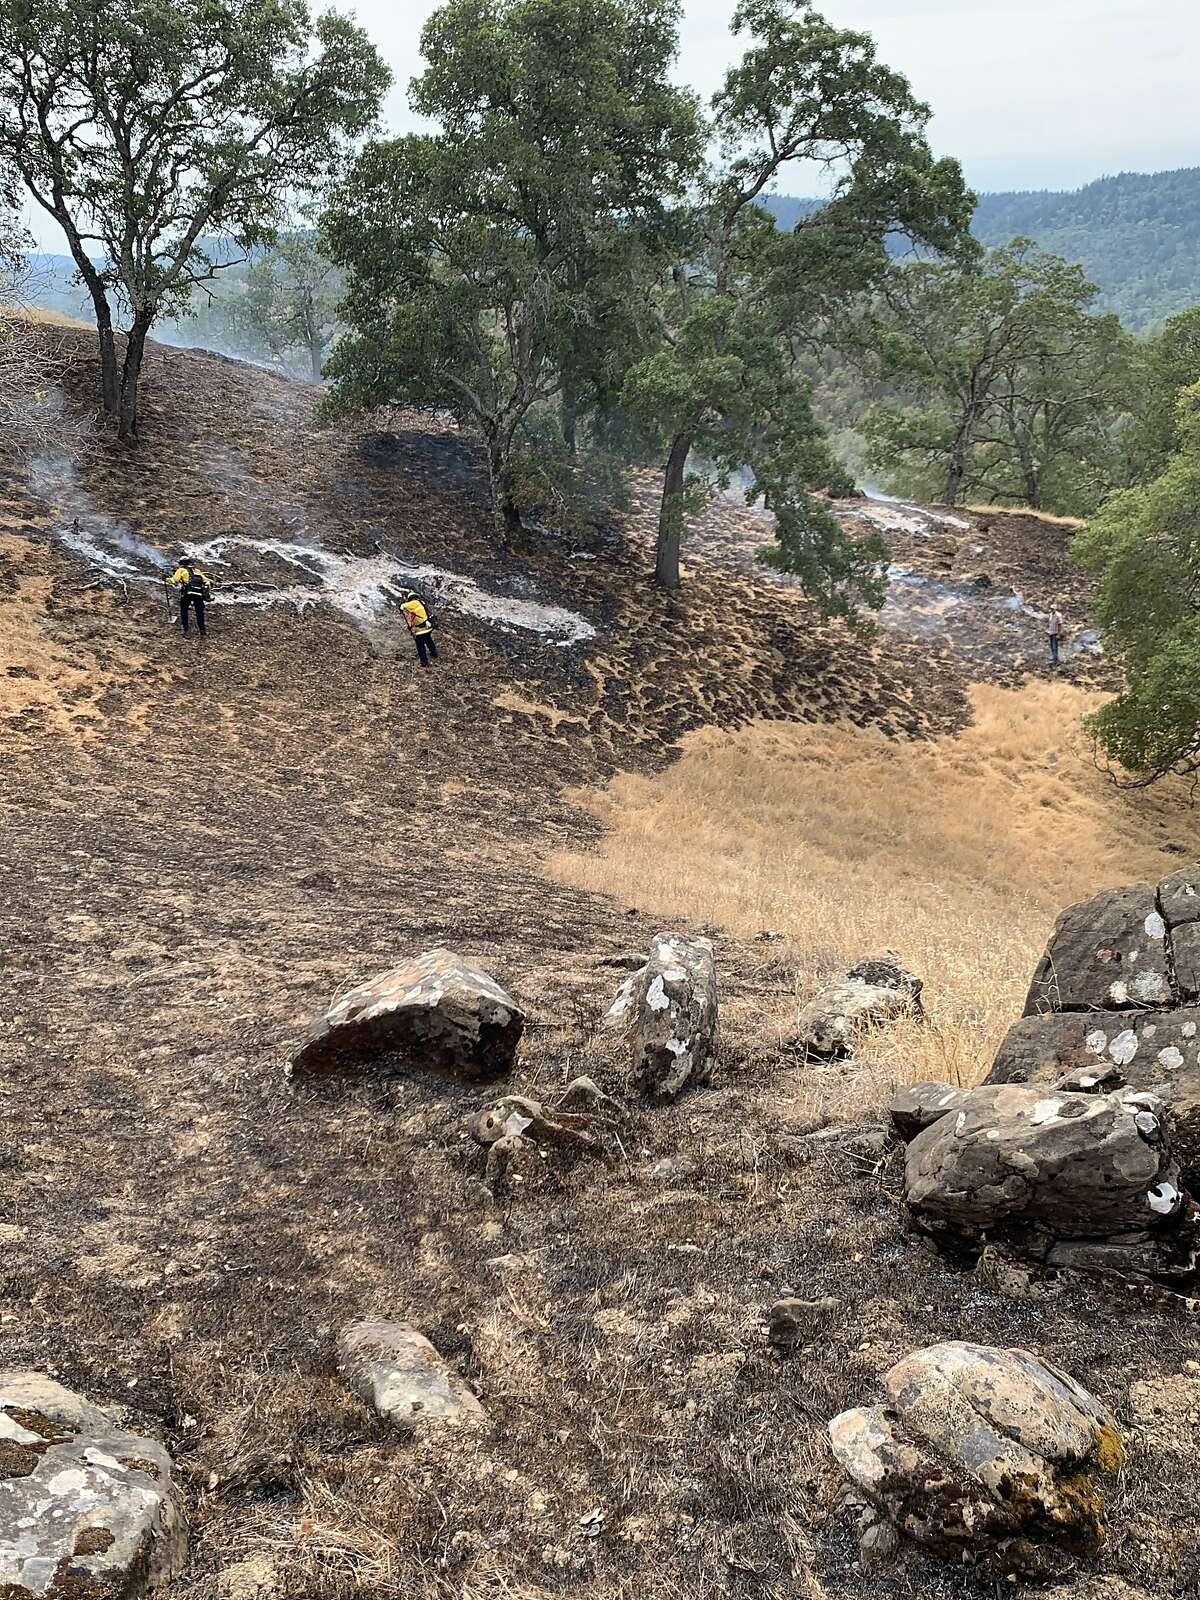 Shots of the wildfires in Pope Valley, in Napa County, where local residents bulldozed their own fire break and saved countless homes.